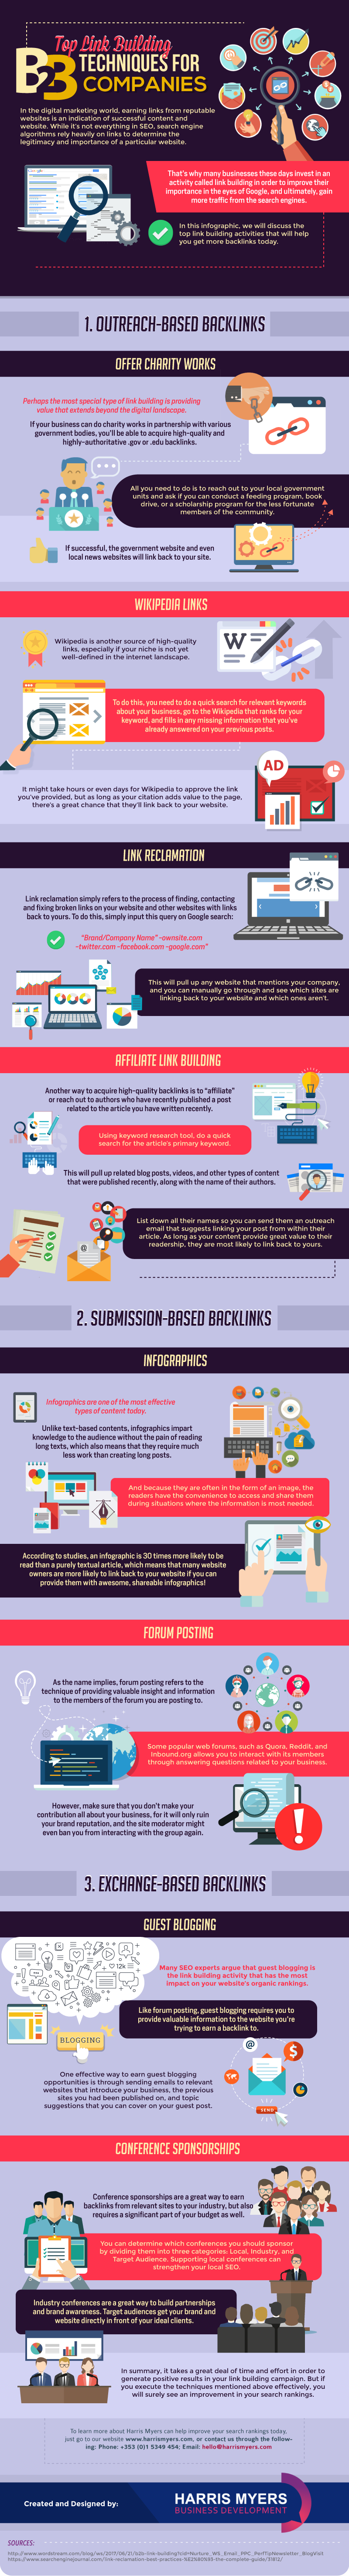 SEO link building for B2B companies - infographic